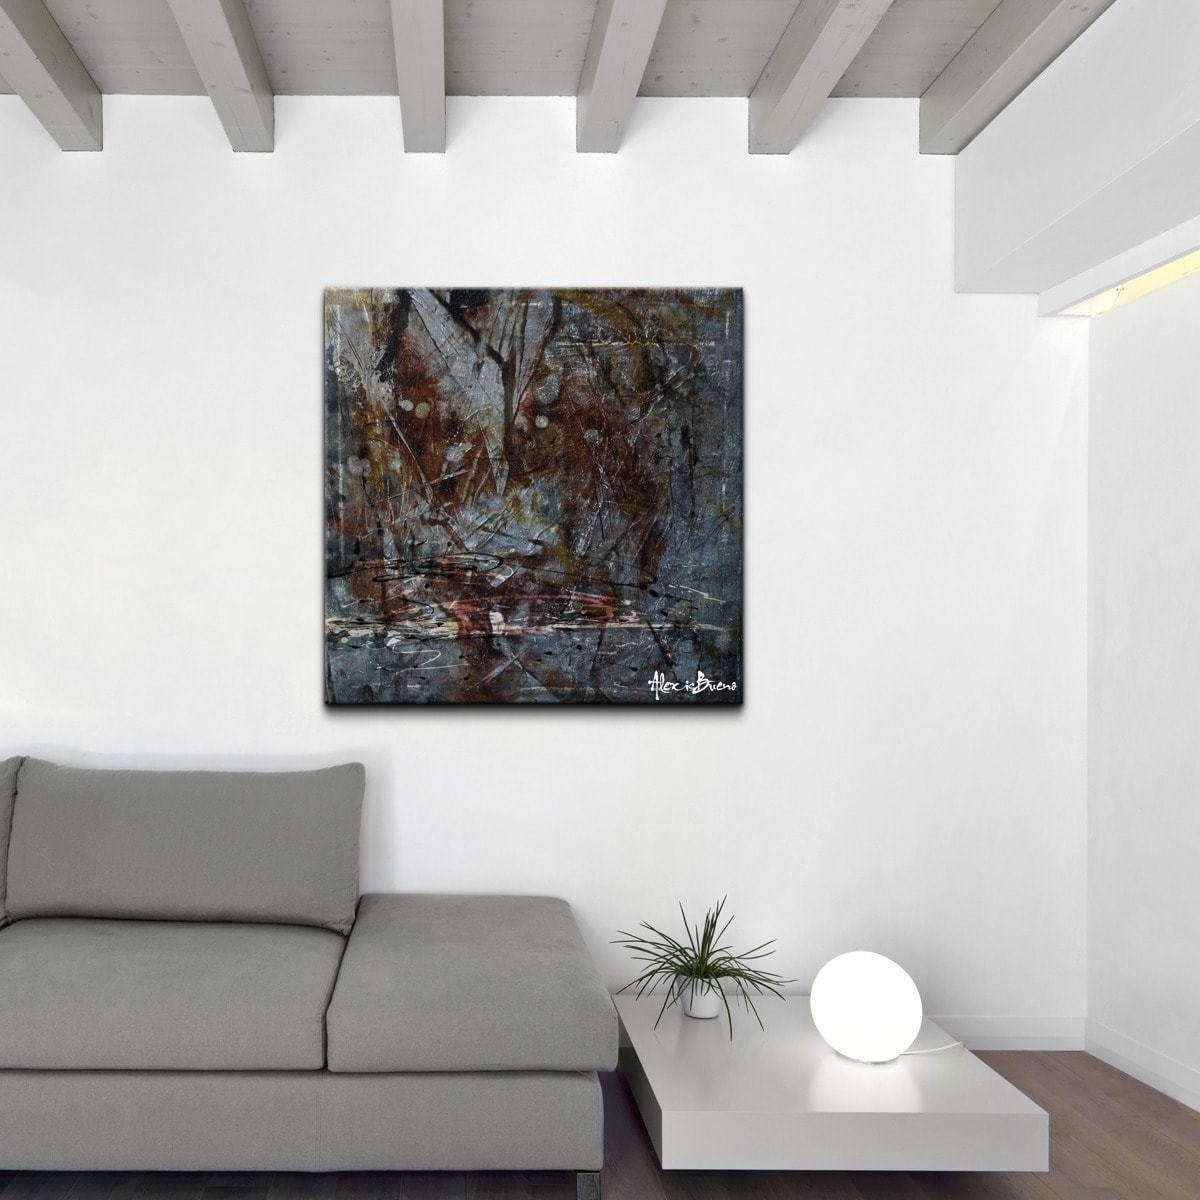 Alexis Bueno Abstract Oversized Canvas Wall Art | Ebay With 2018 Abstract Oversized Canvas Wall Art (View 8 of 20)